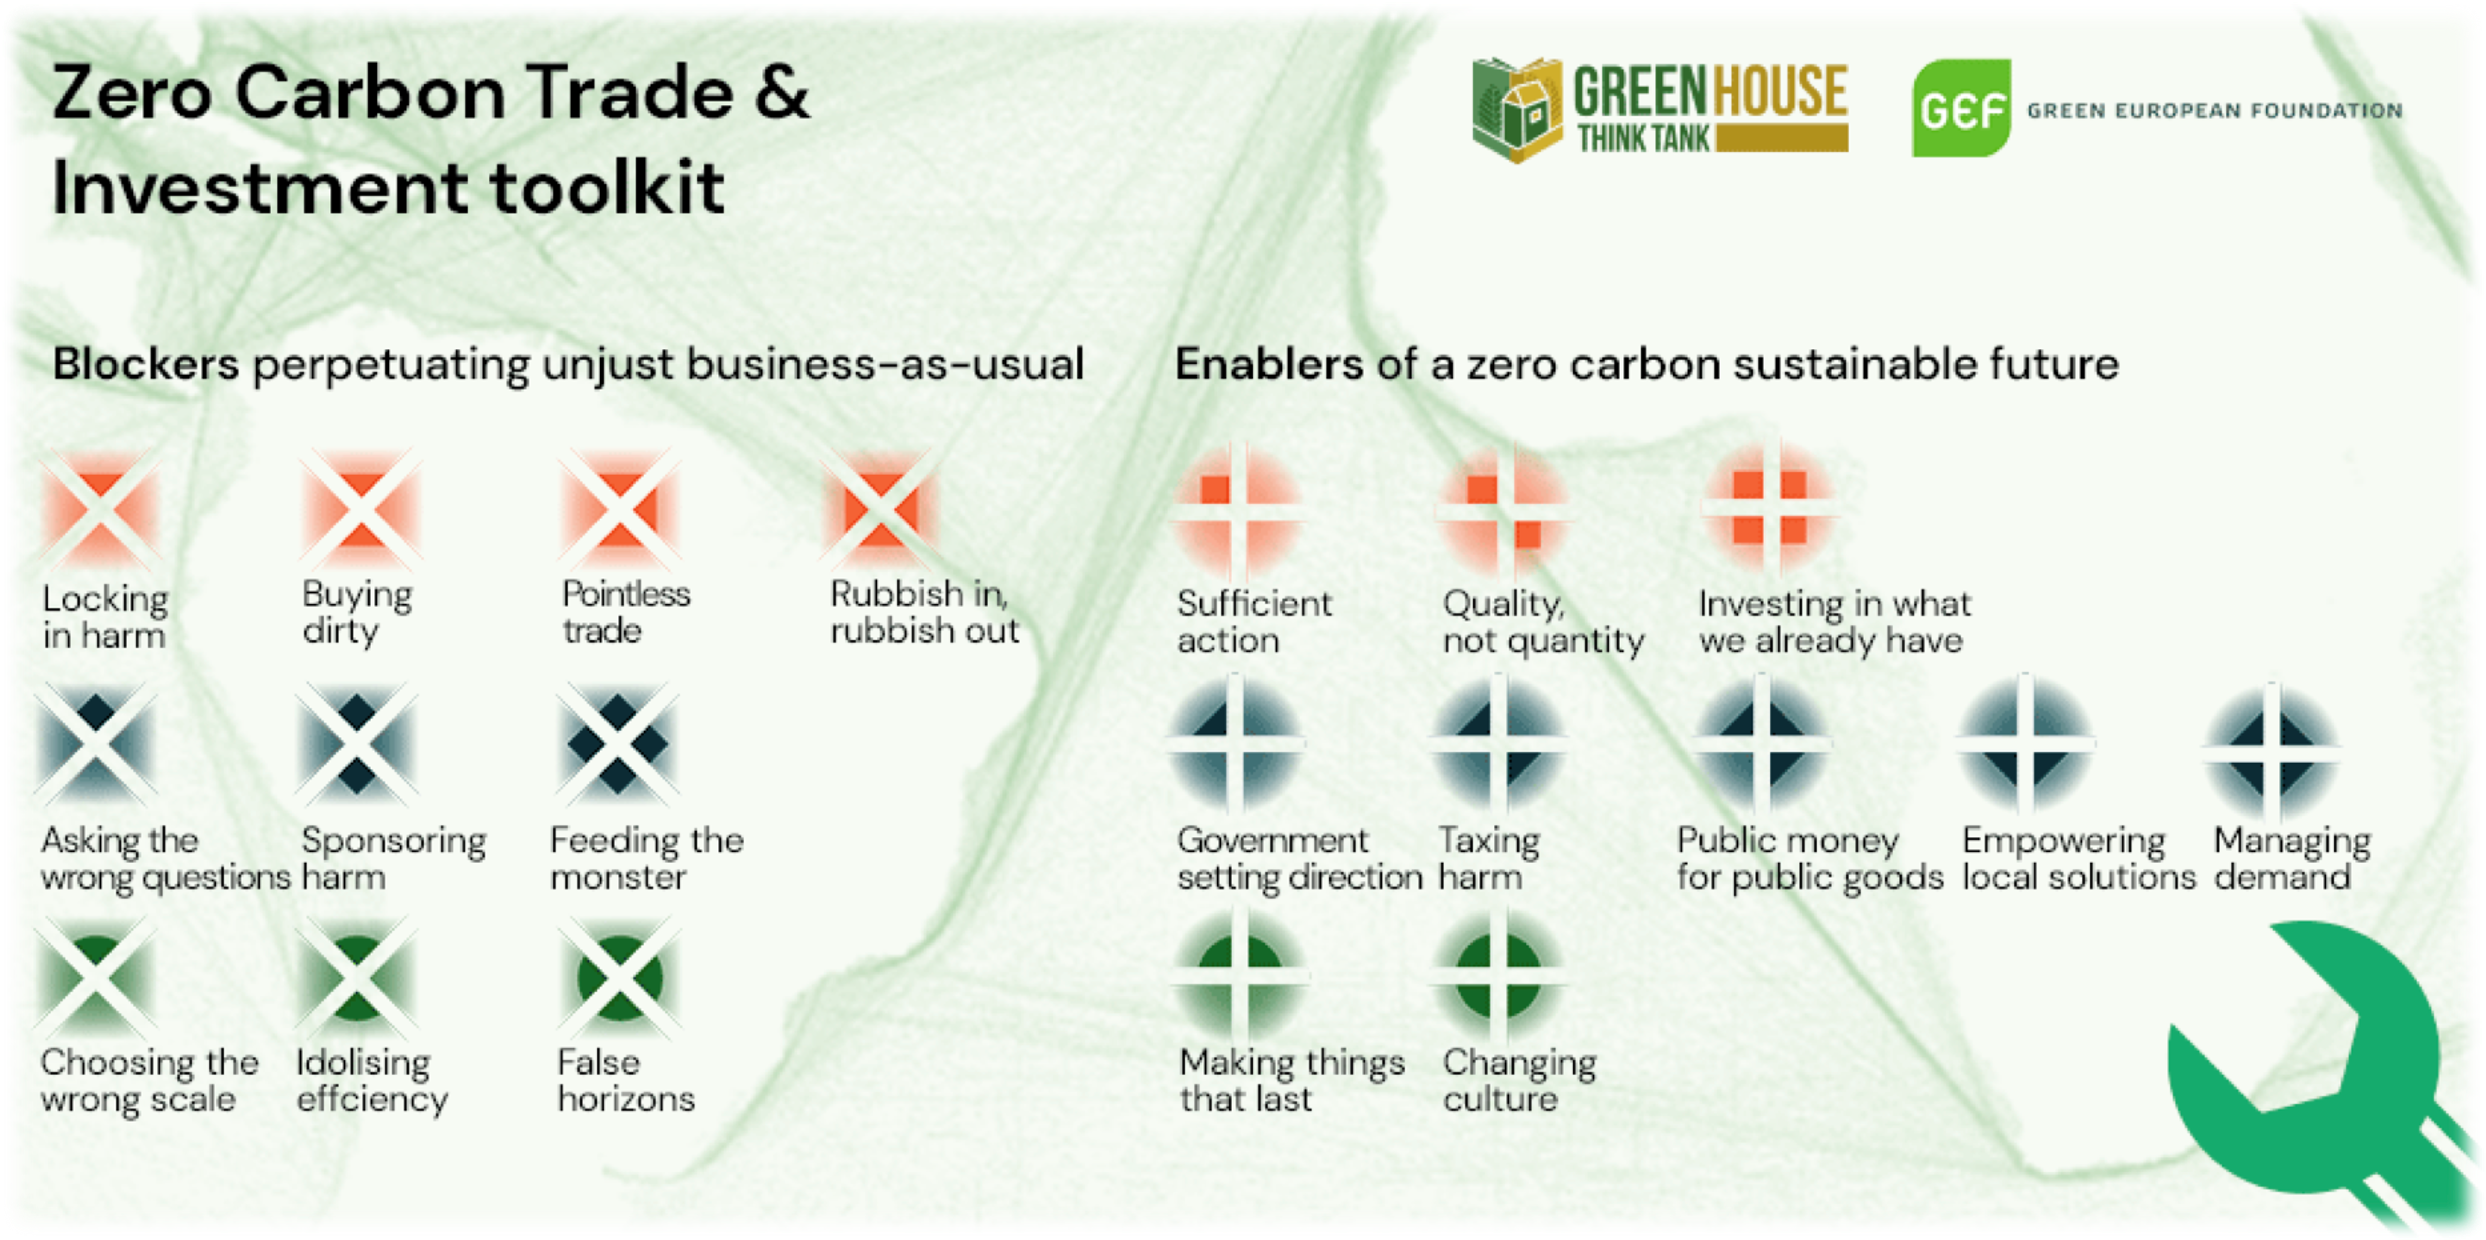 New report from Green House think tank on getting to zero carbon trade